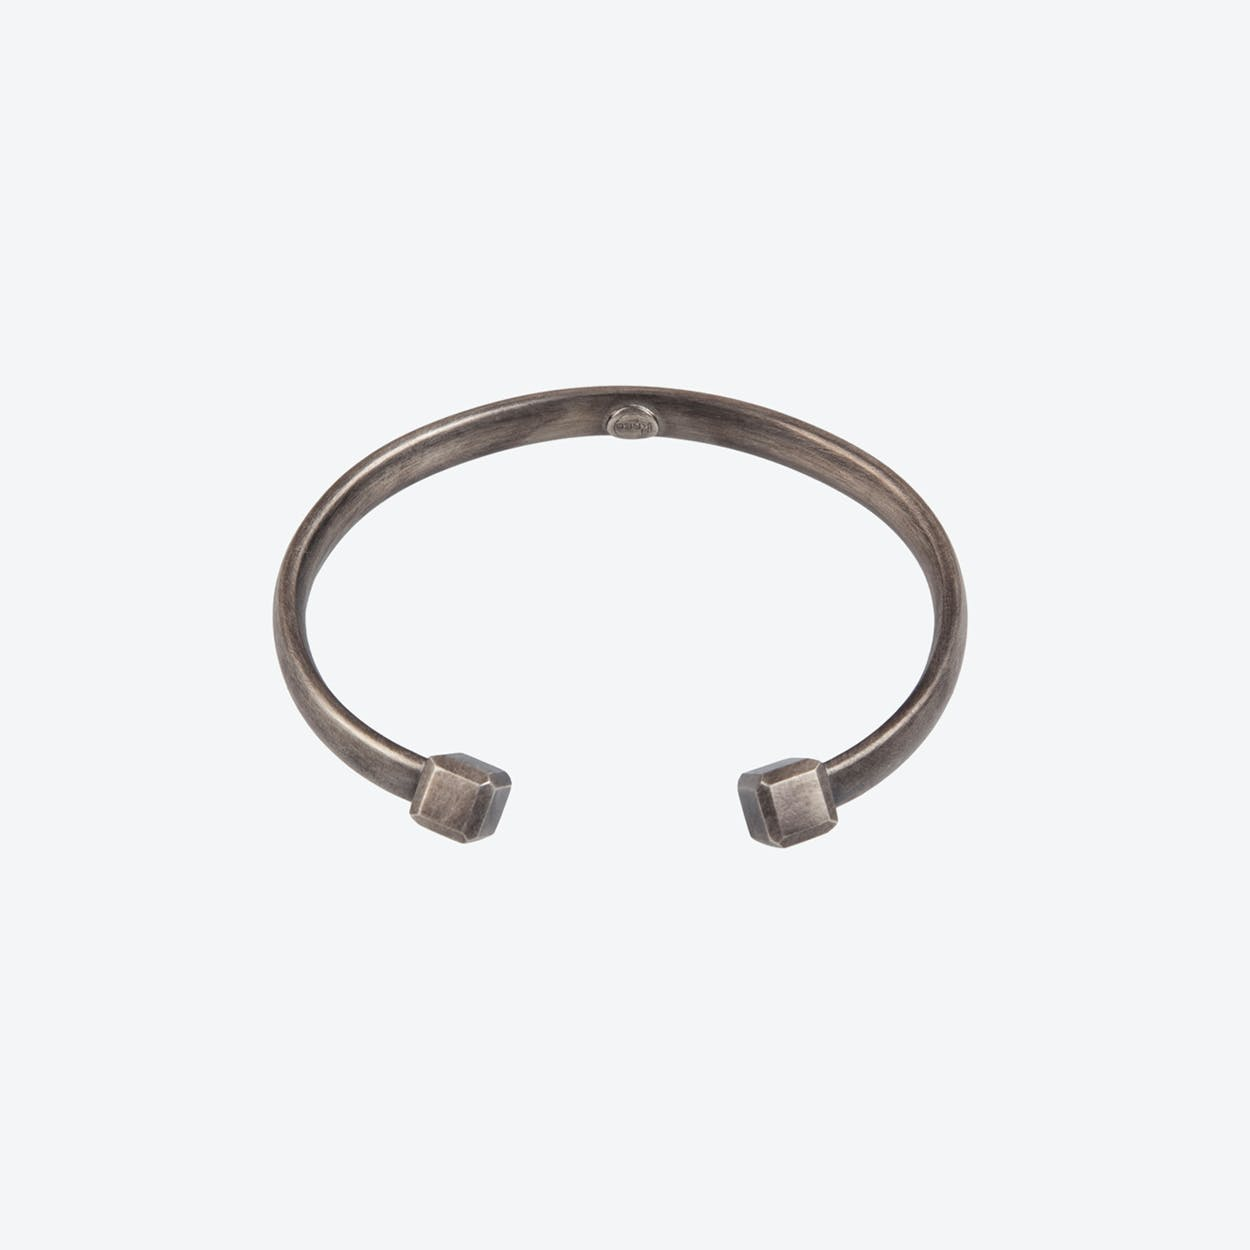 OVAL X Strong Bracelet in Oxidized Sterling Silver